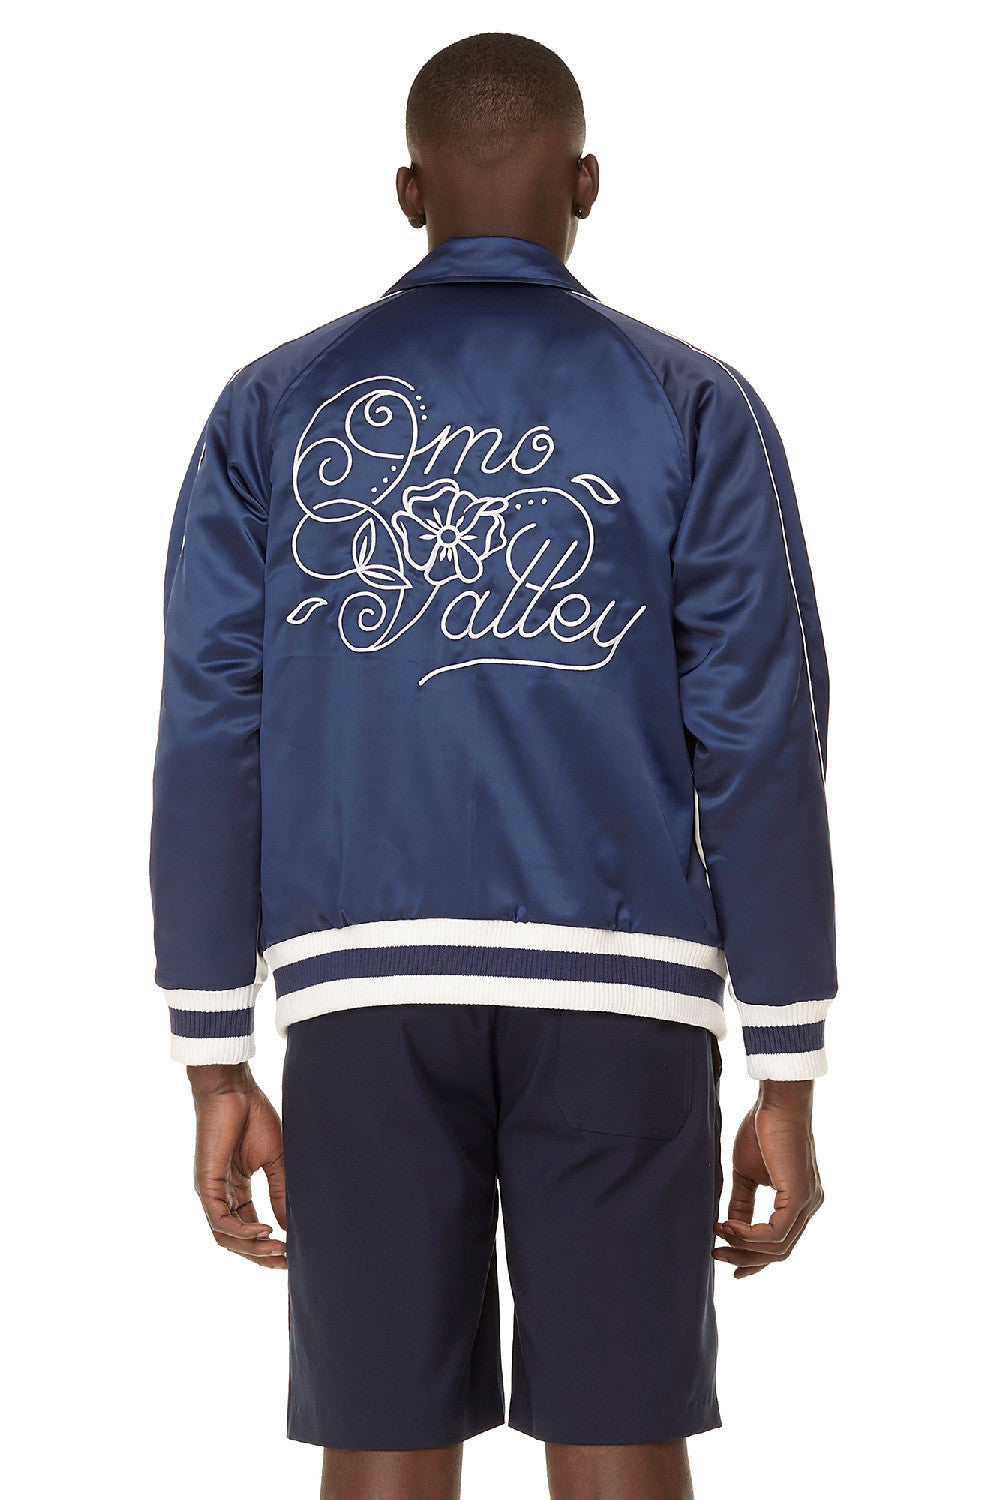 Satin Omo Valley Varsity Jacket